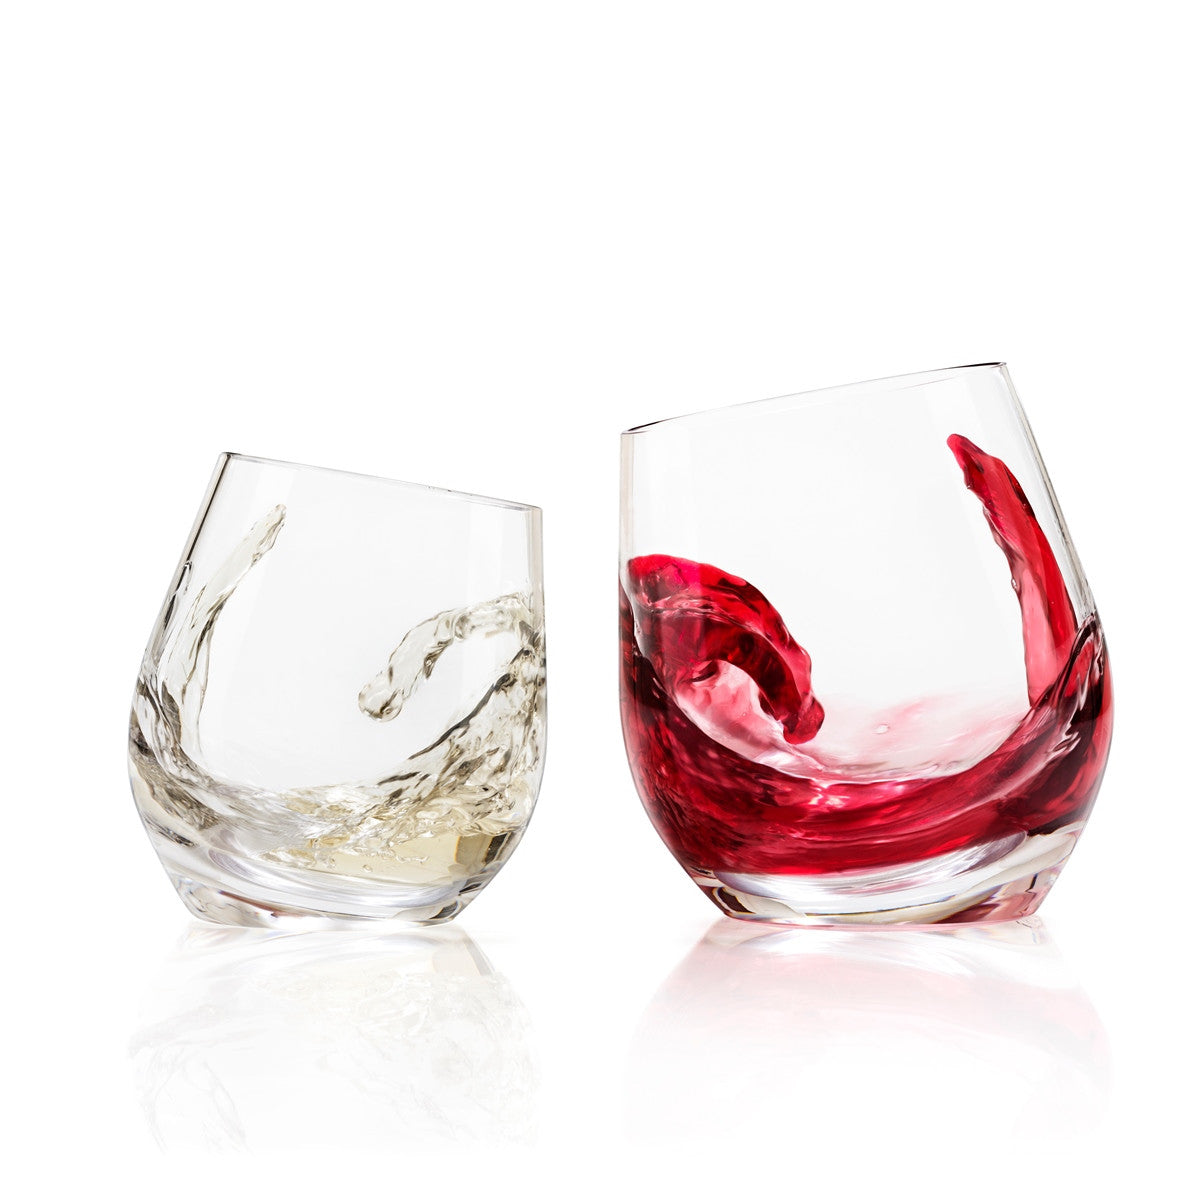 SHADOW white wine drinking glass (Set of 2)